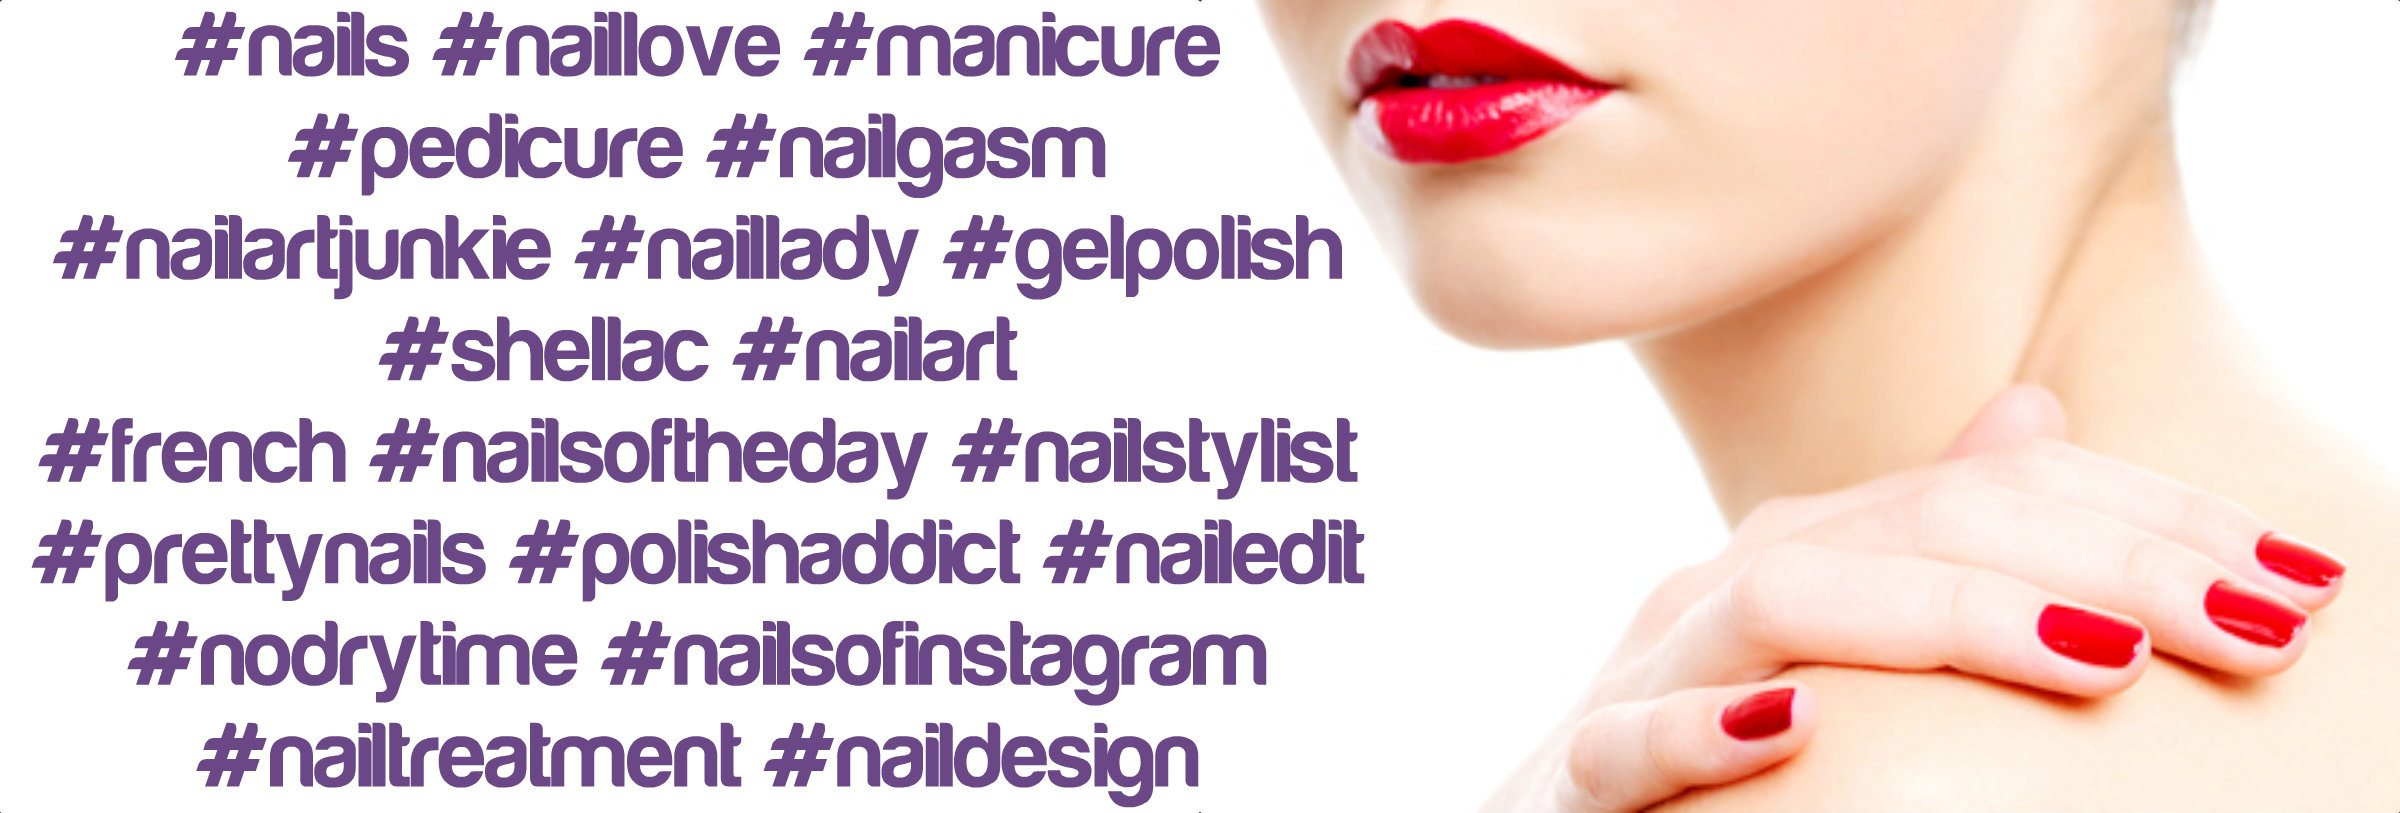 nails-salon-hashtag